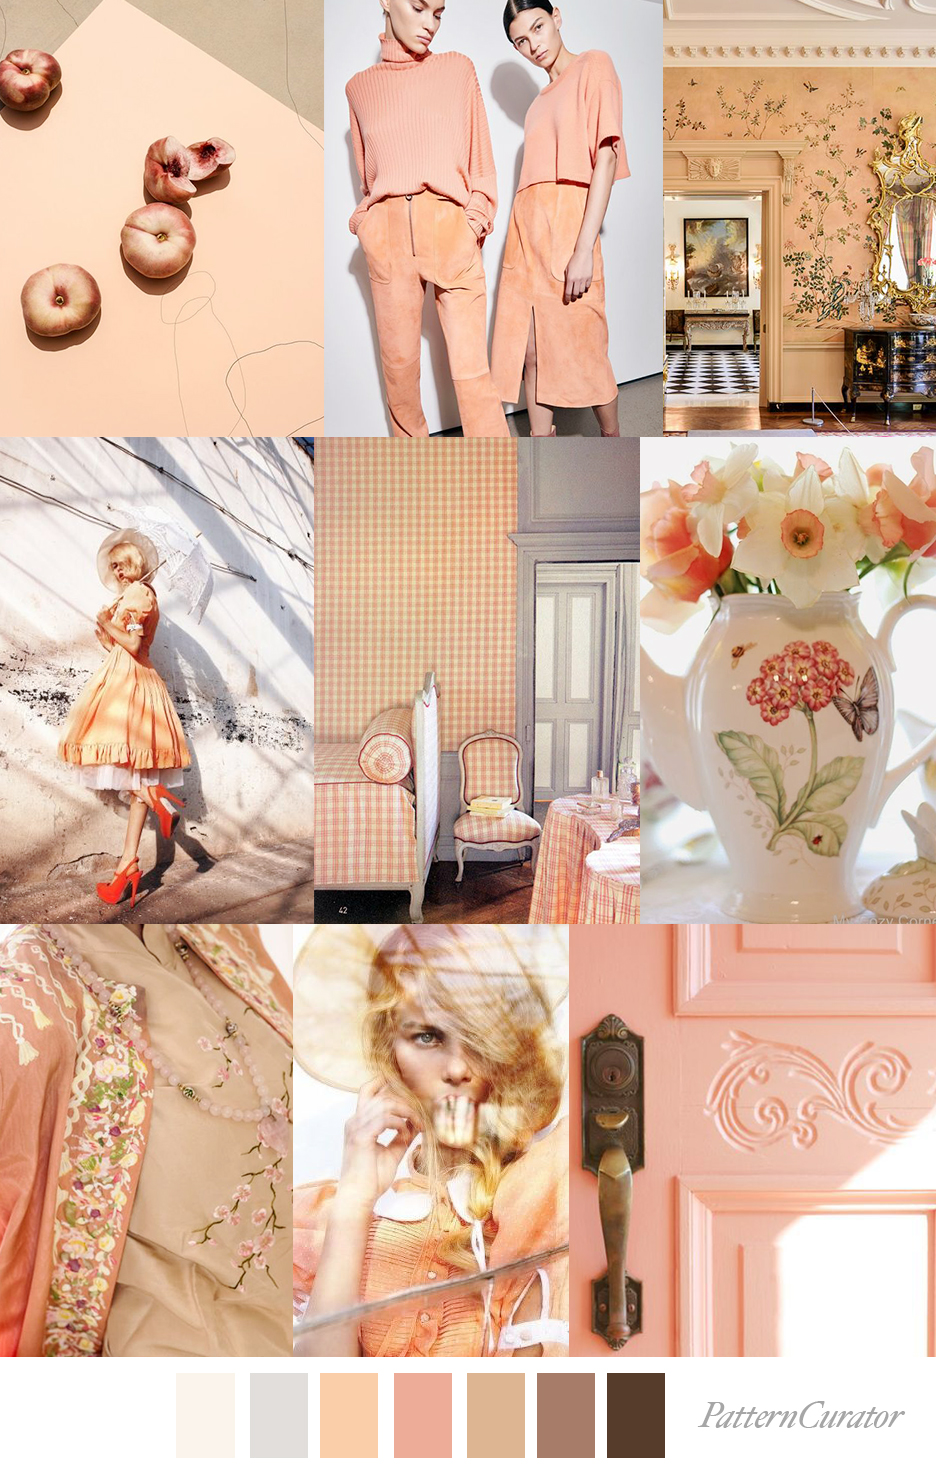 GEORGIA-PEACH-SS20-SITE.jpg